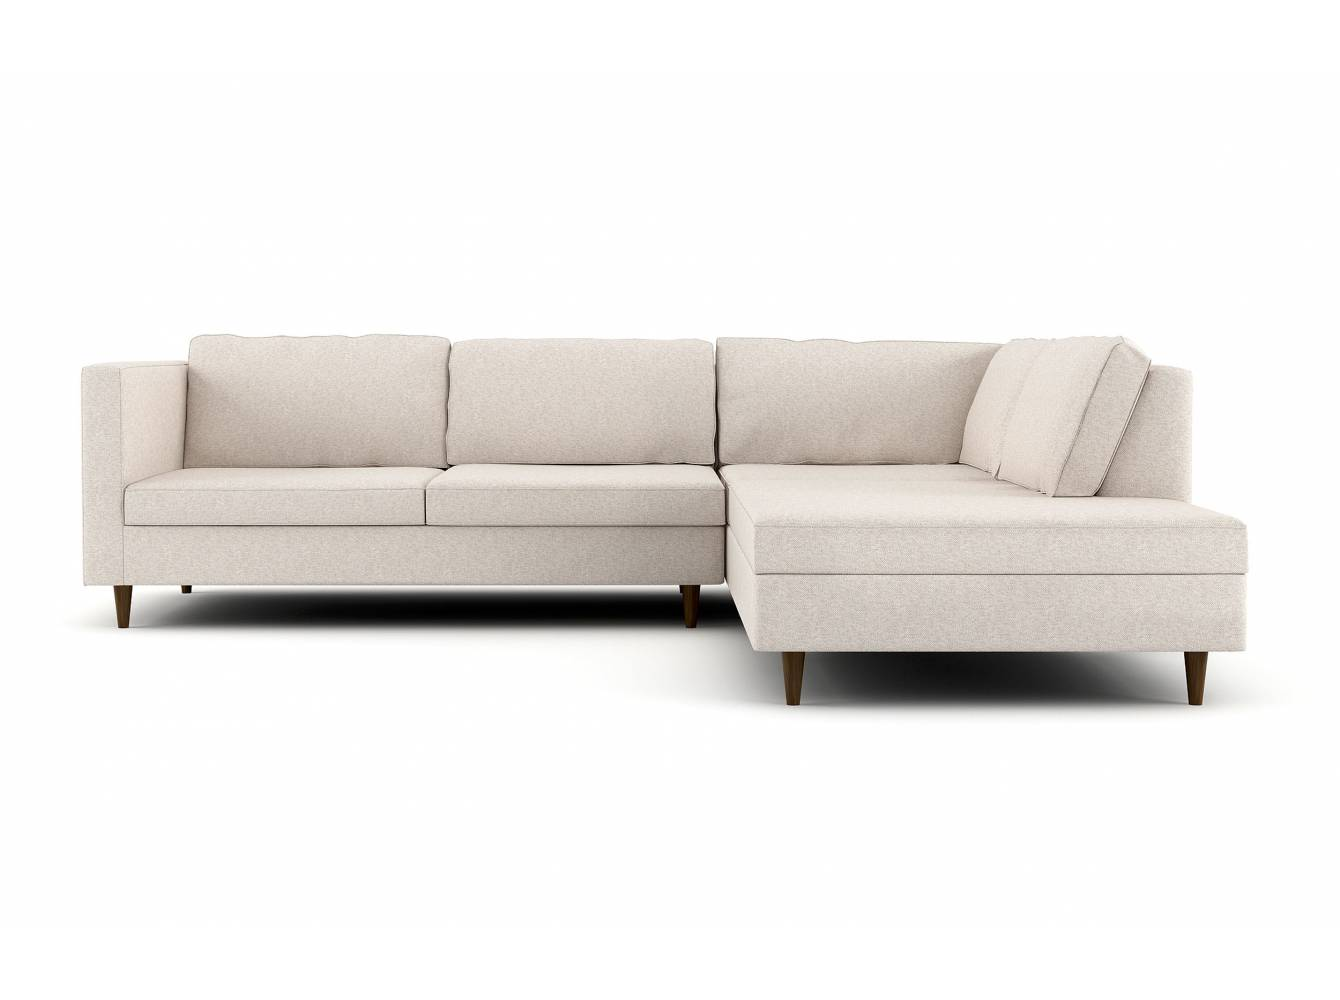 Non Toxic Sofa Guide - How Sofa Can Be Toxic Or Non Toxic